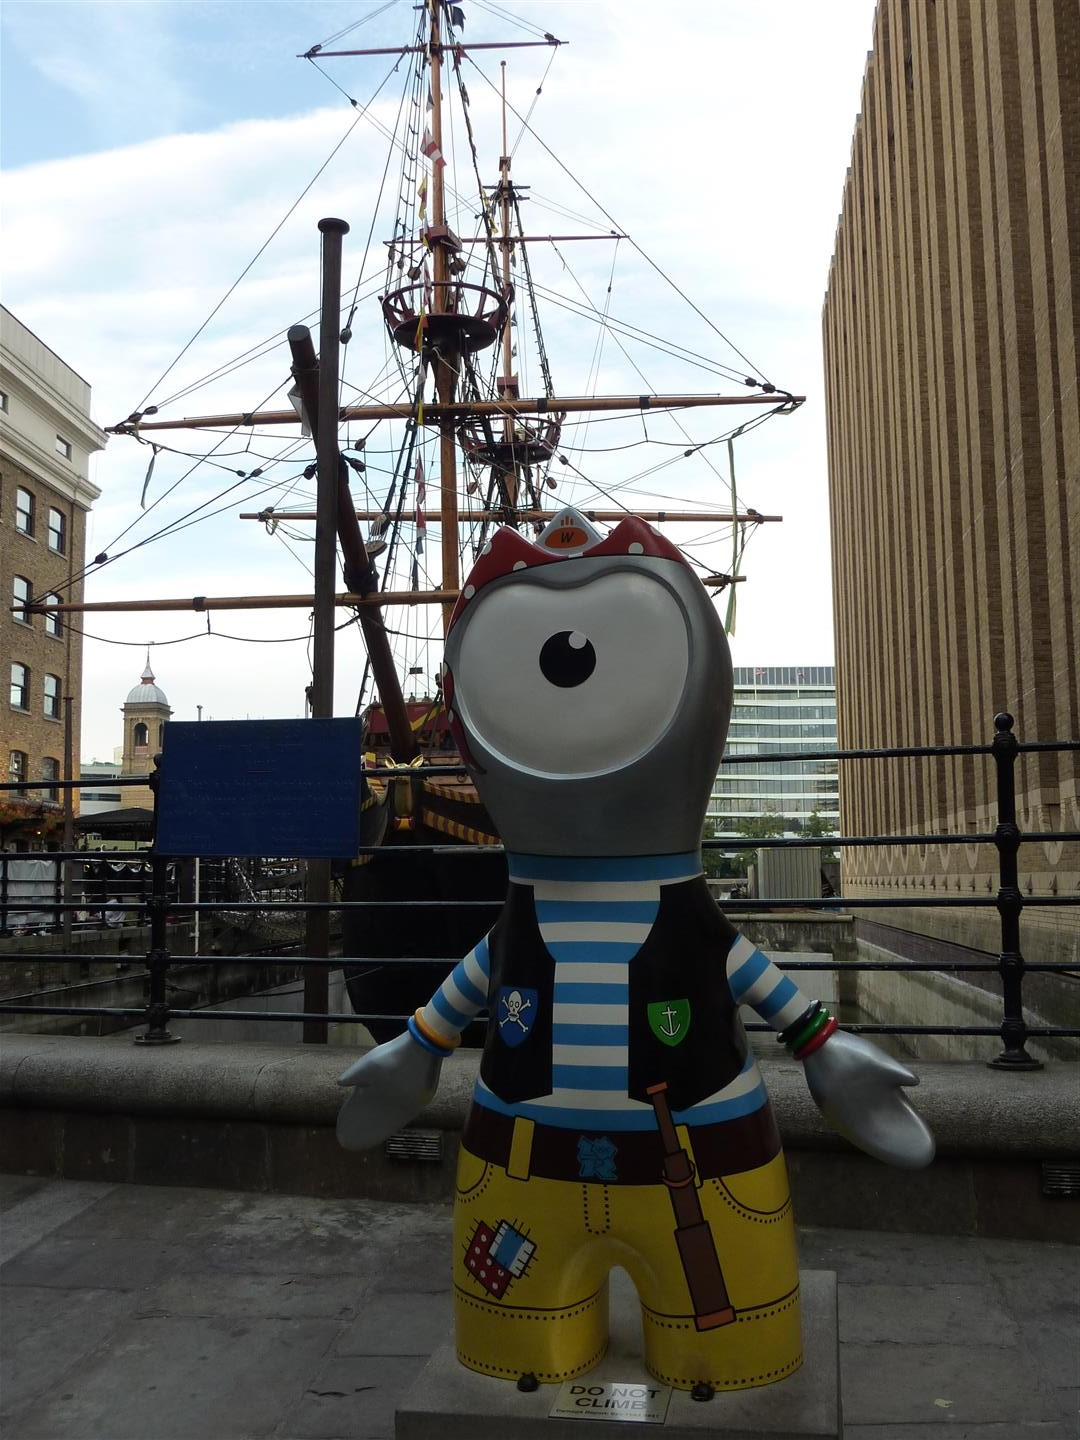 London itinerary - Golden Hinde